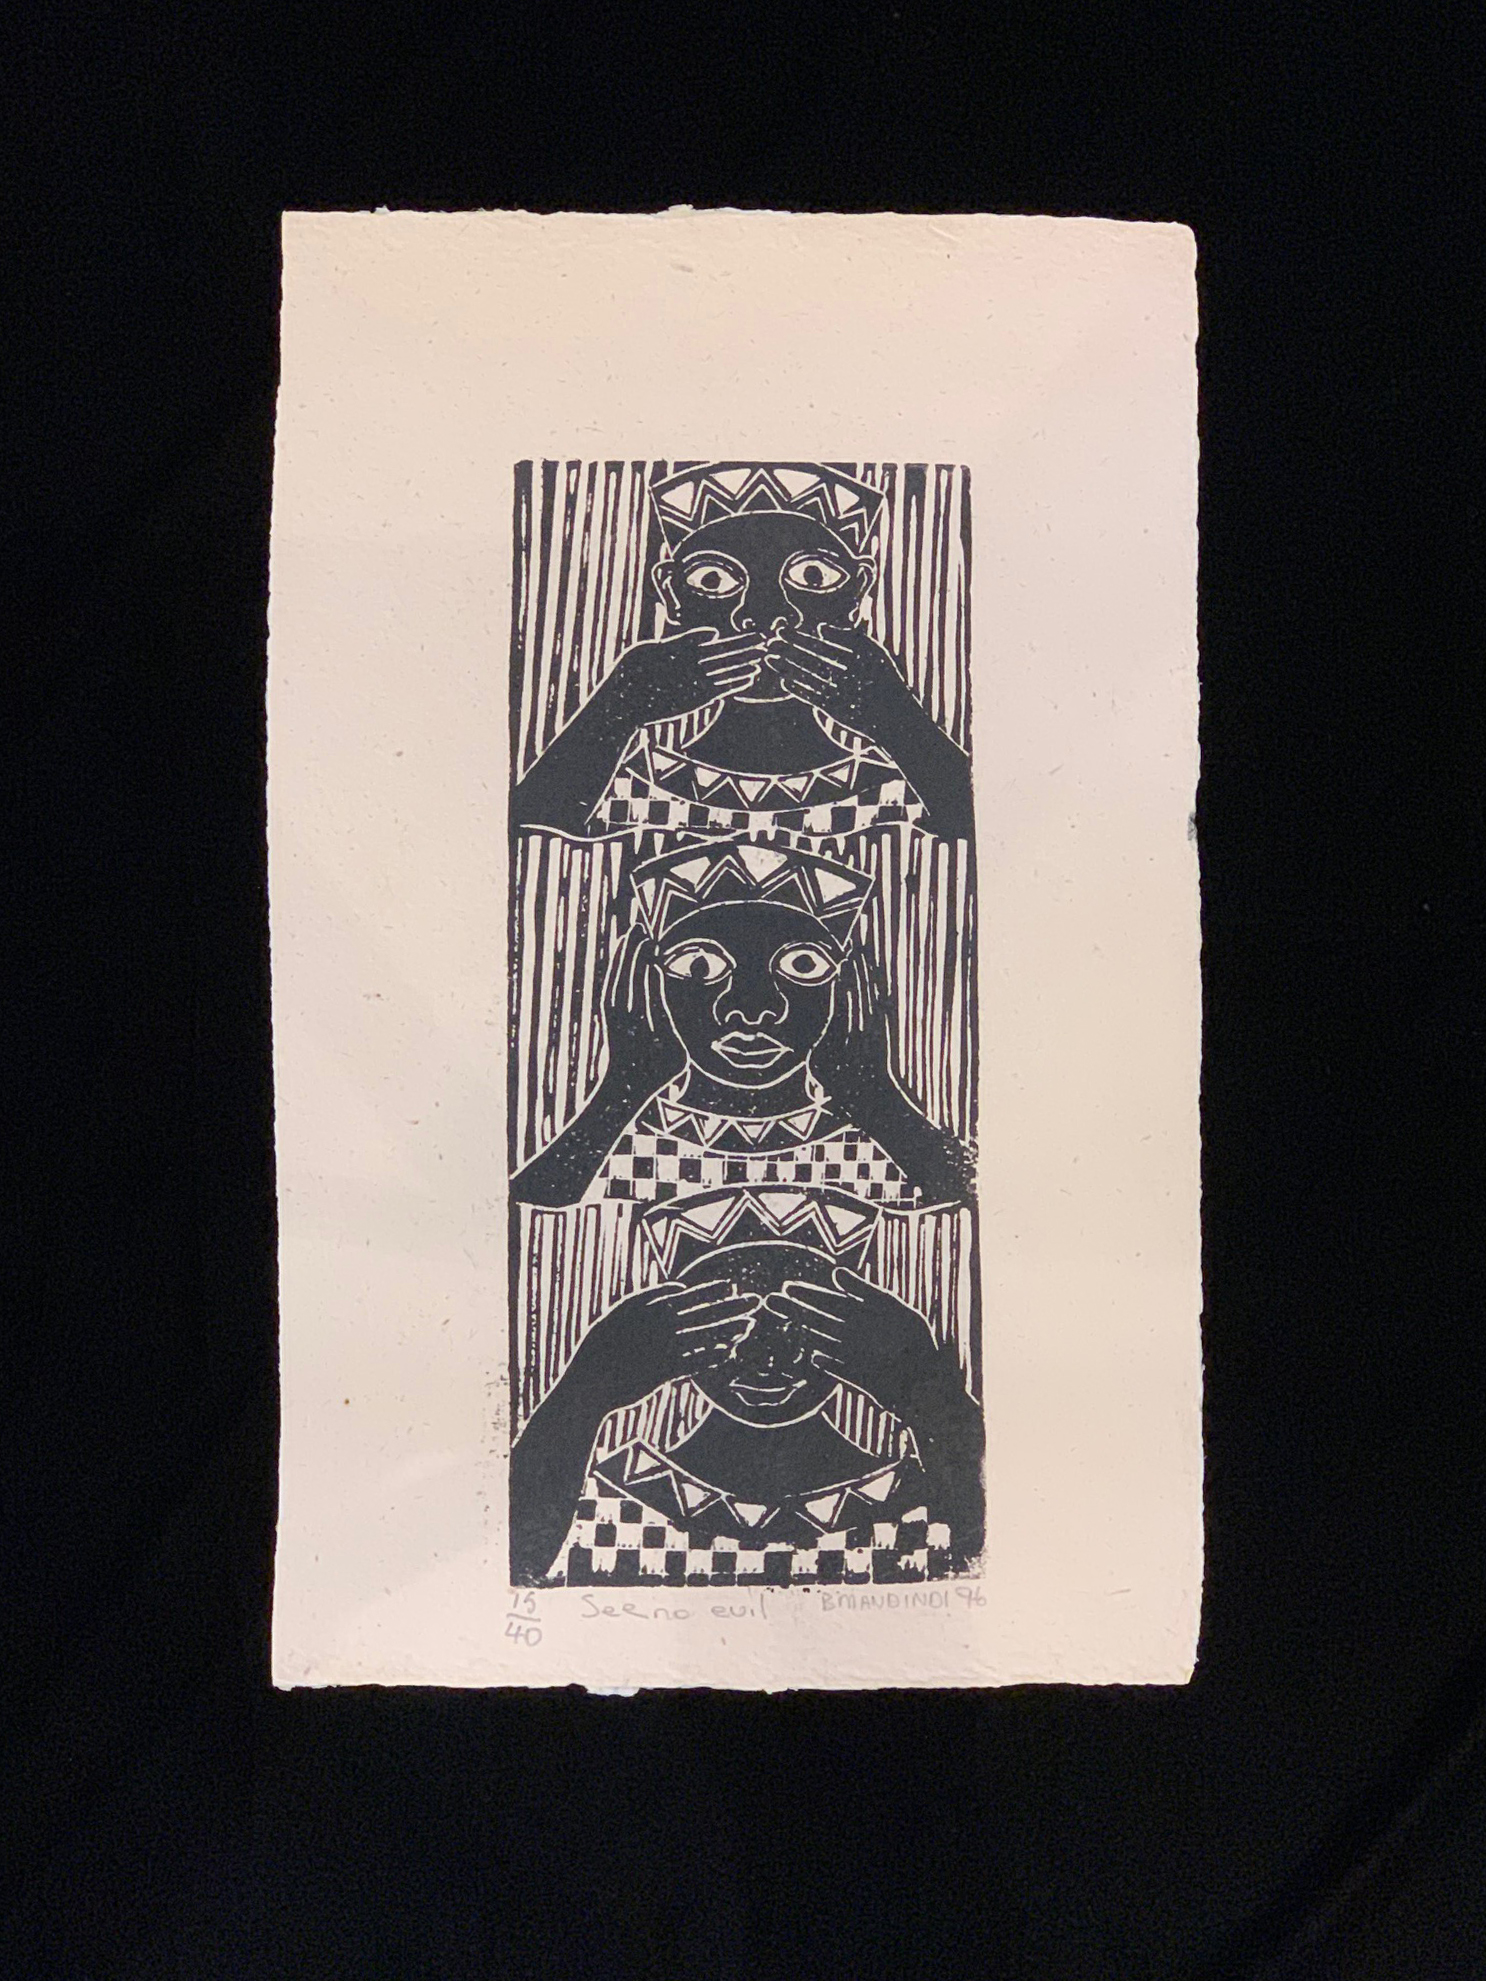 See No Evil - a linocut limited edition (15/40) by the late Billy Mandindi